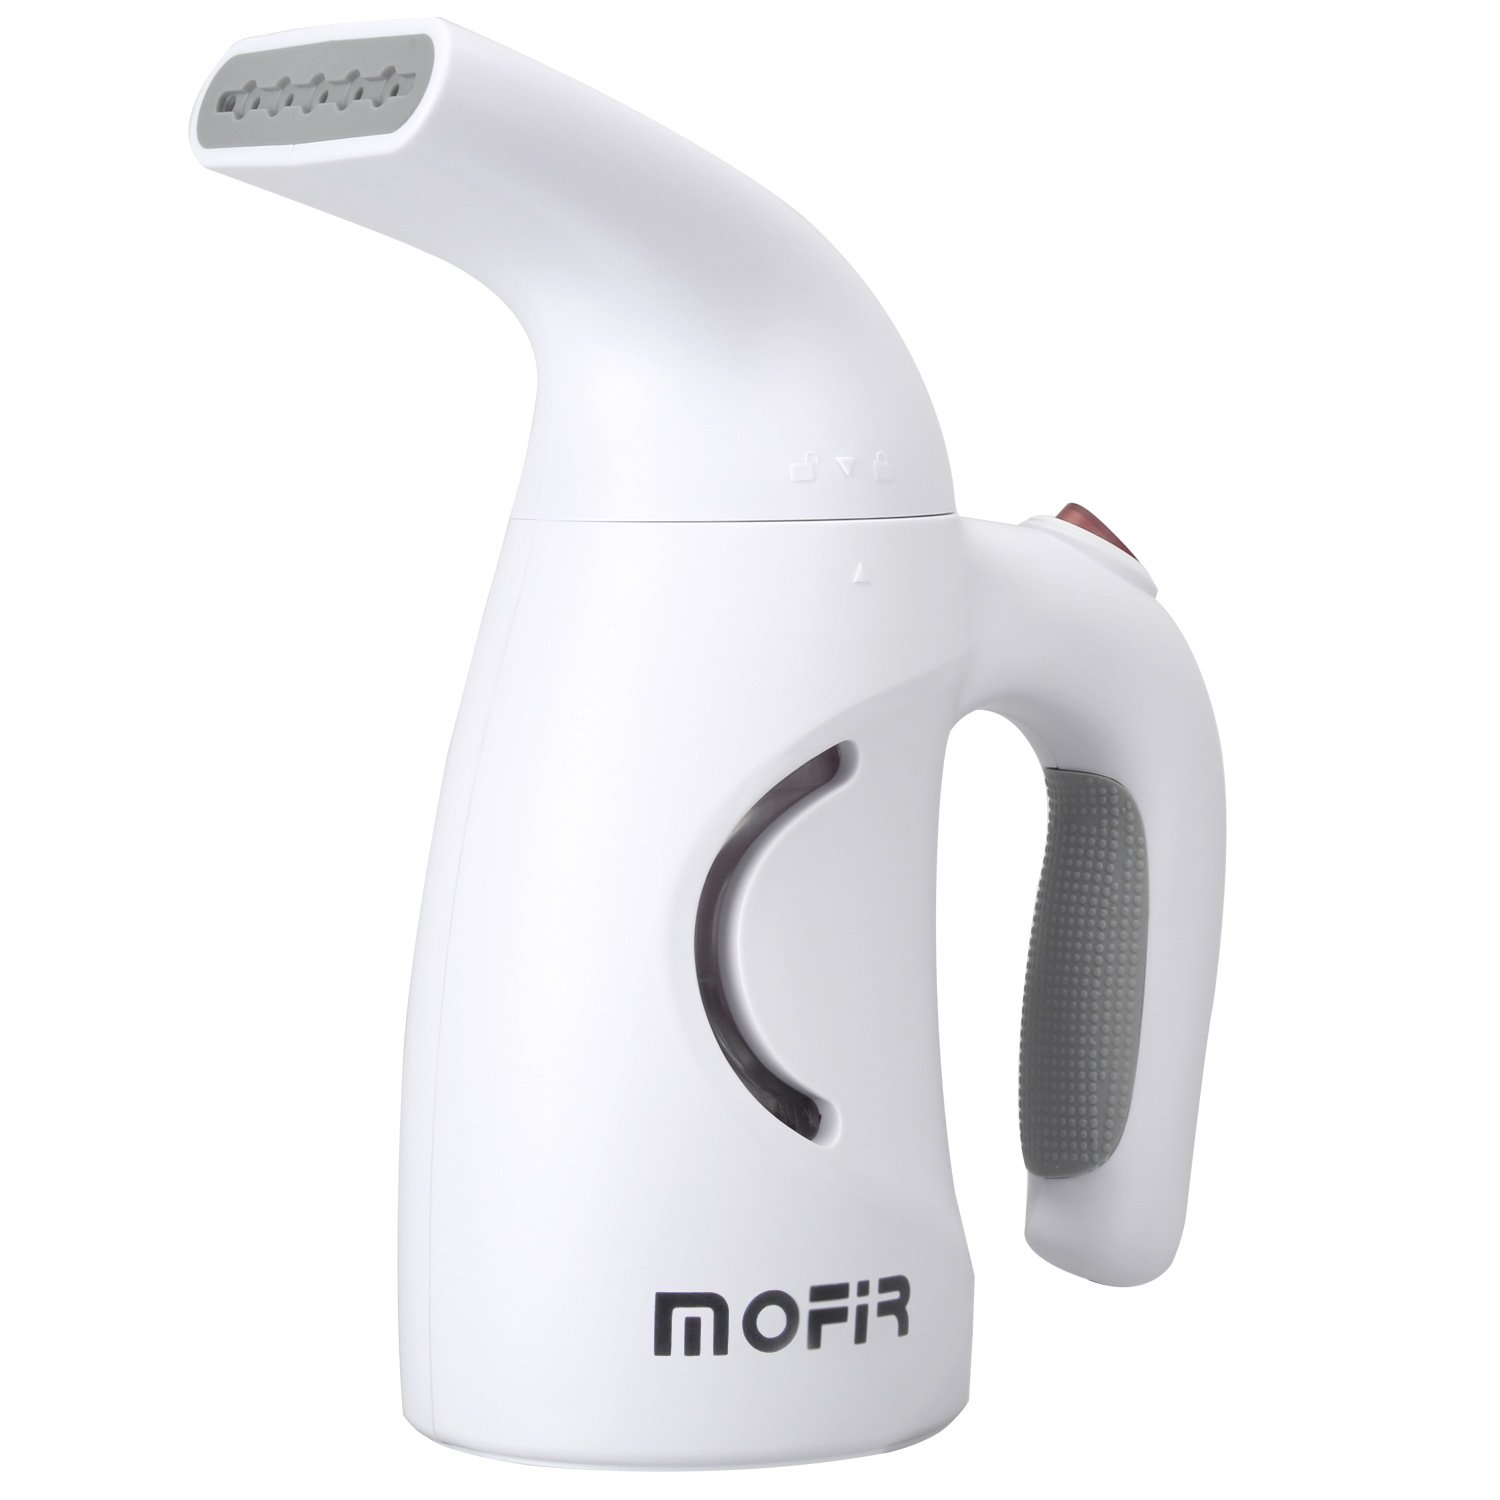 MOFIR Steamer for Clothes, Portable Handheld Clothes Steamer Safety Fabric Steamer Fast-Heat Up Travel Garment Steamers for Home and Travel